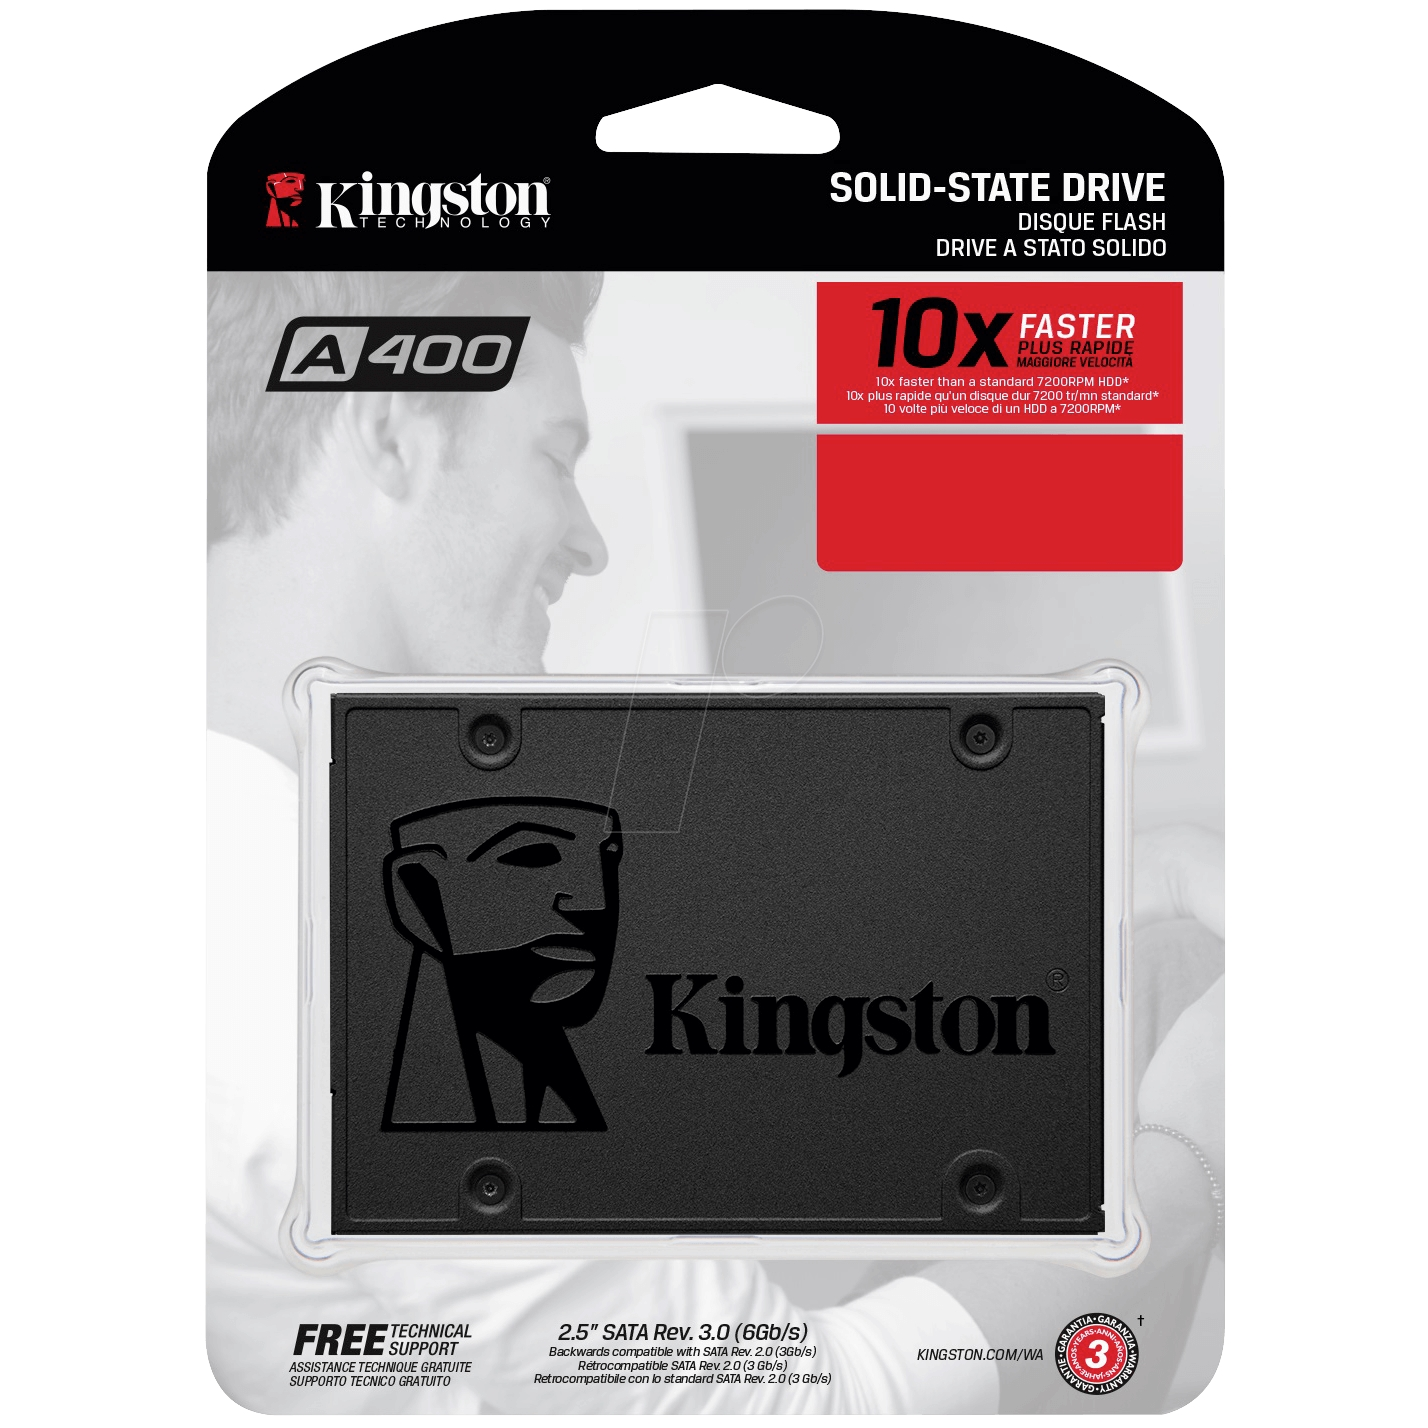 KINGSTON A400 120GB 500/350MB/s 7mm SATA 3.0 SSD SA400S37/120G